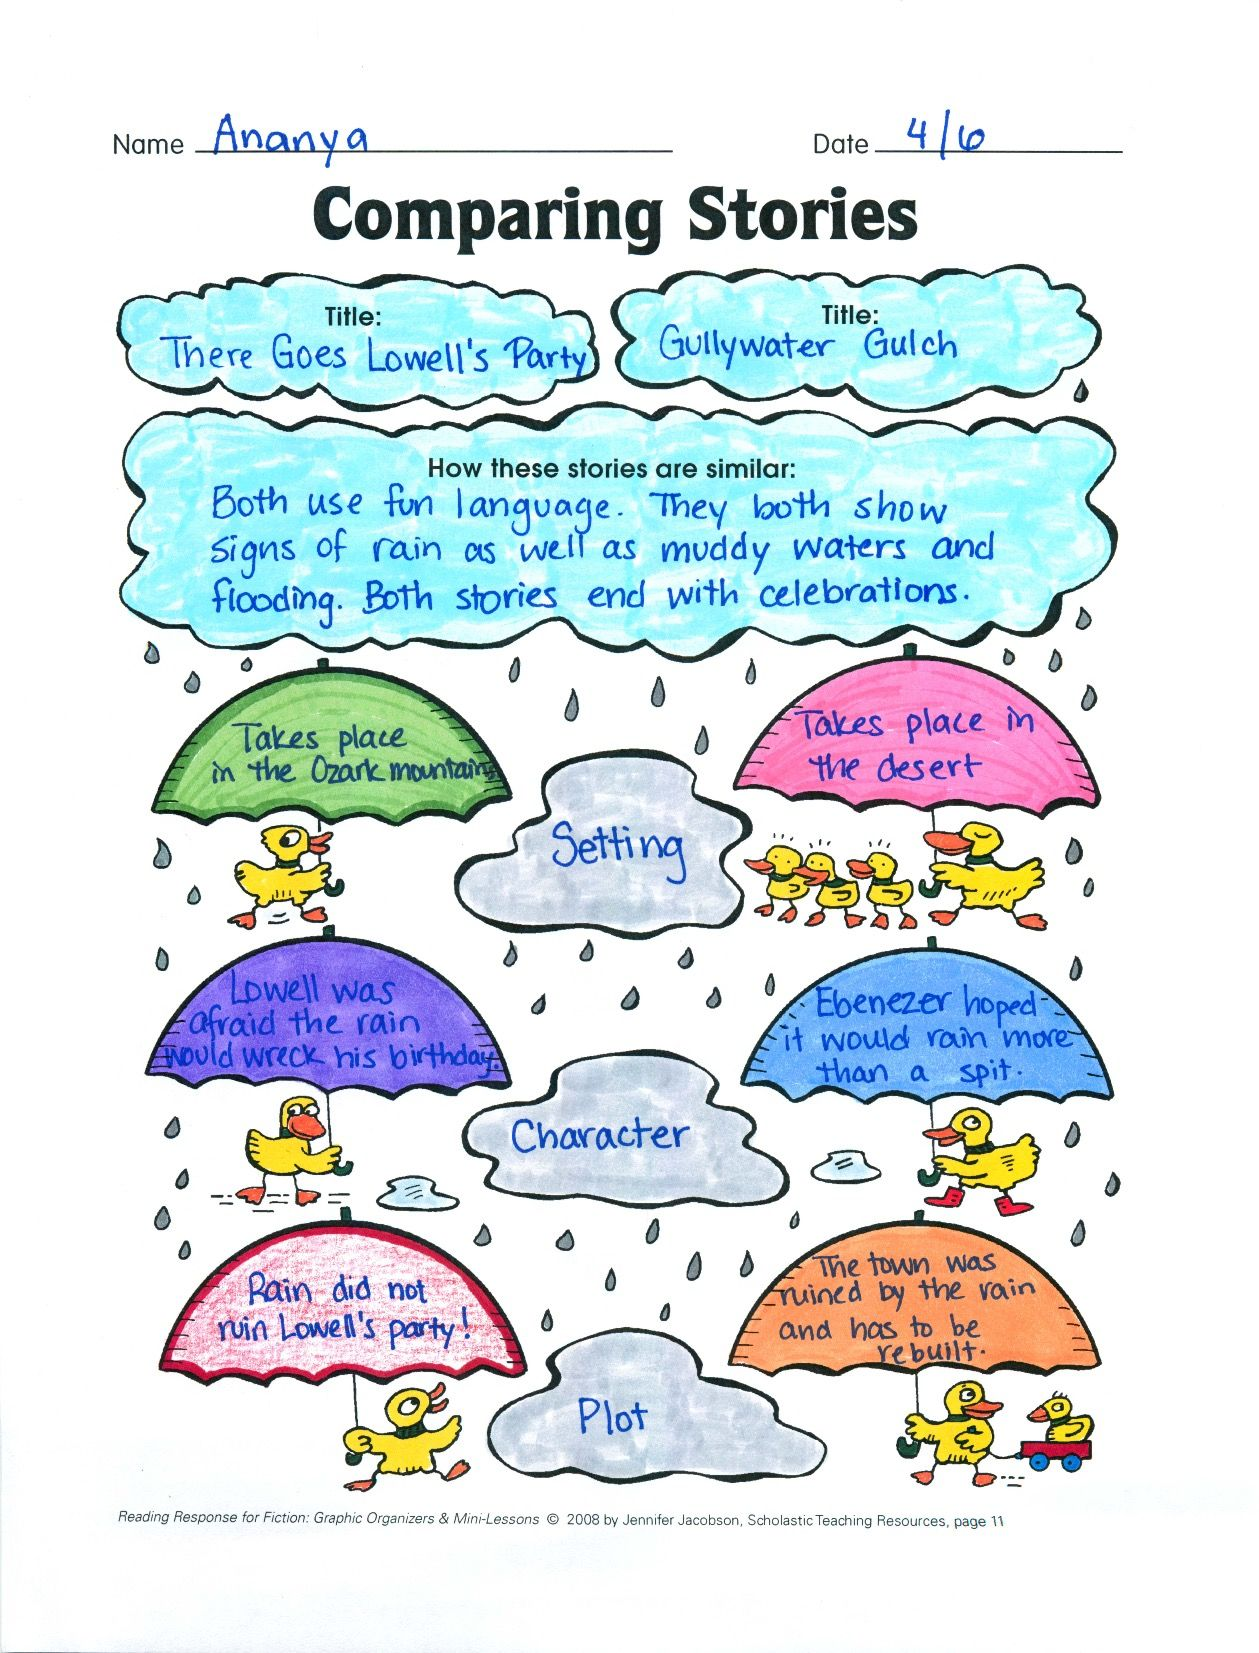 Comparing Stories Story Elements Graphic Organizer Rl 2 9 Rl 3 9 Rl 4 9 Graphic Organizers Story Elements Story Elements Graphic Organizer